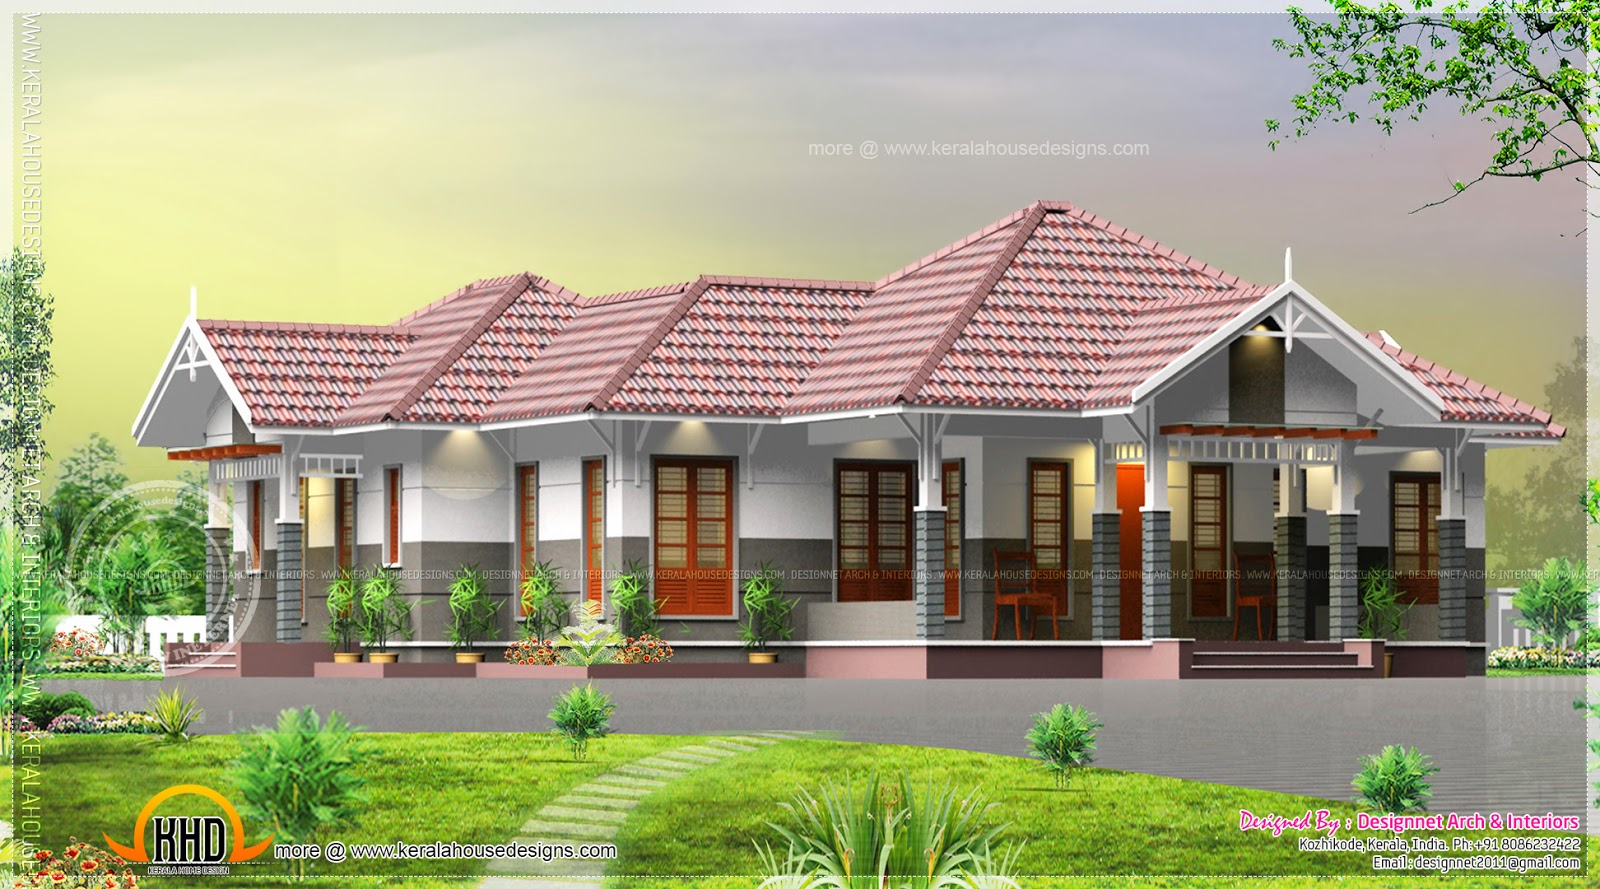 4 bedroom single floor house plans kerala style for Kerala single floor house plans